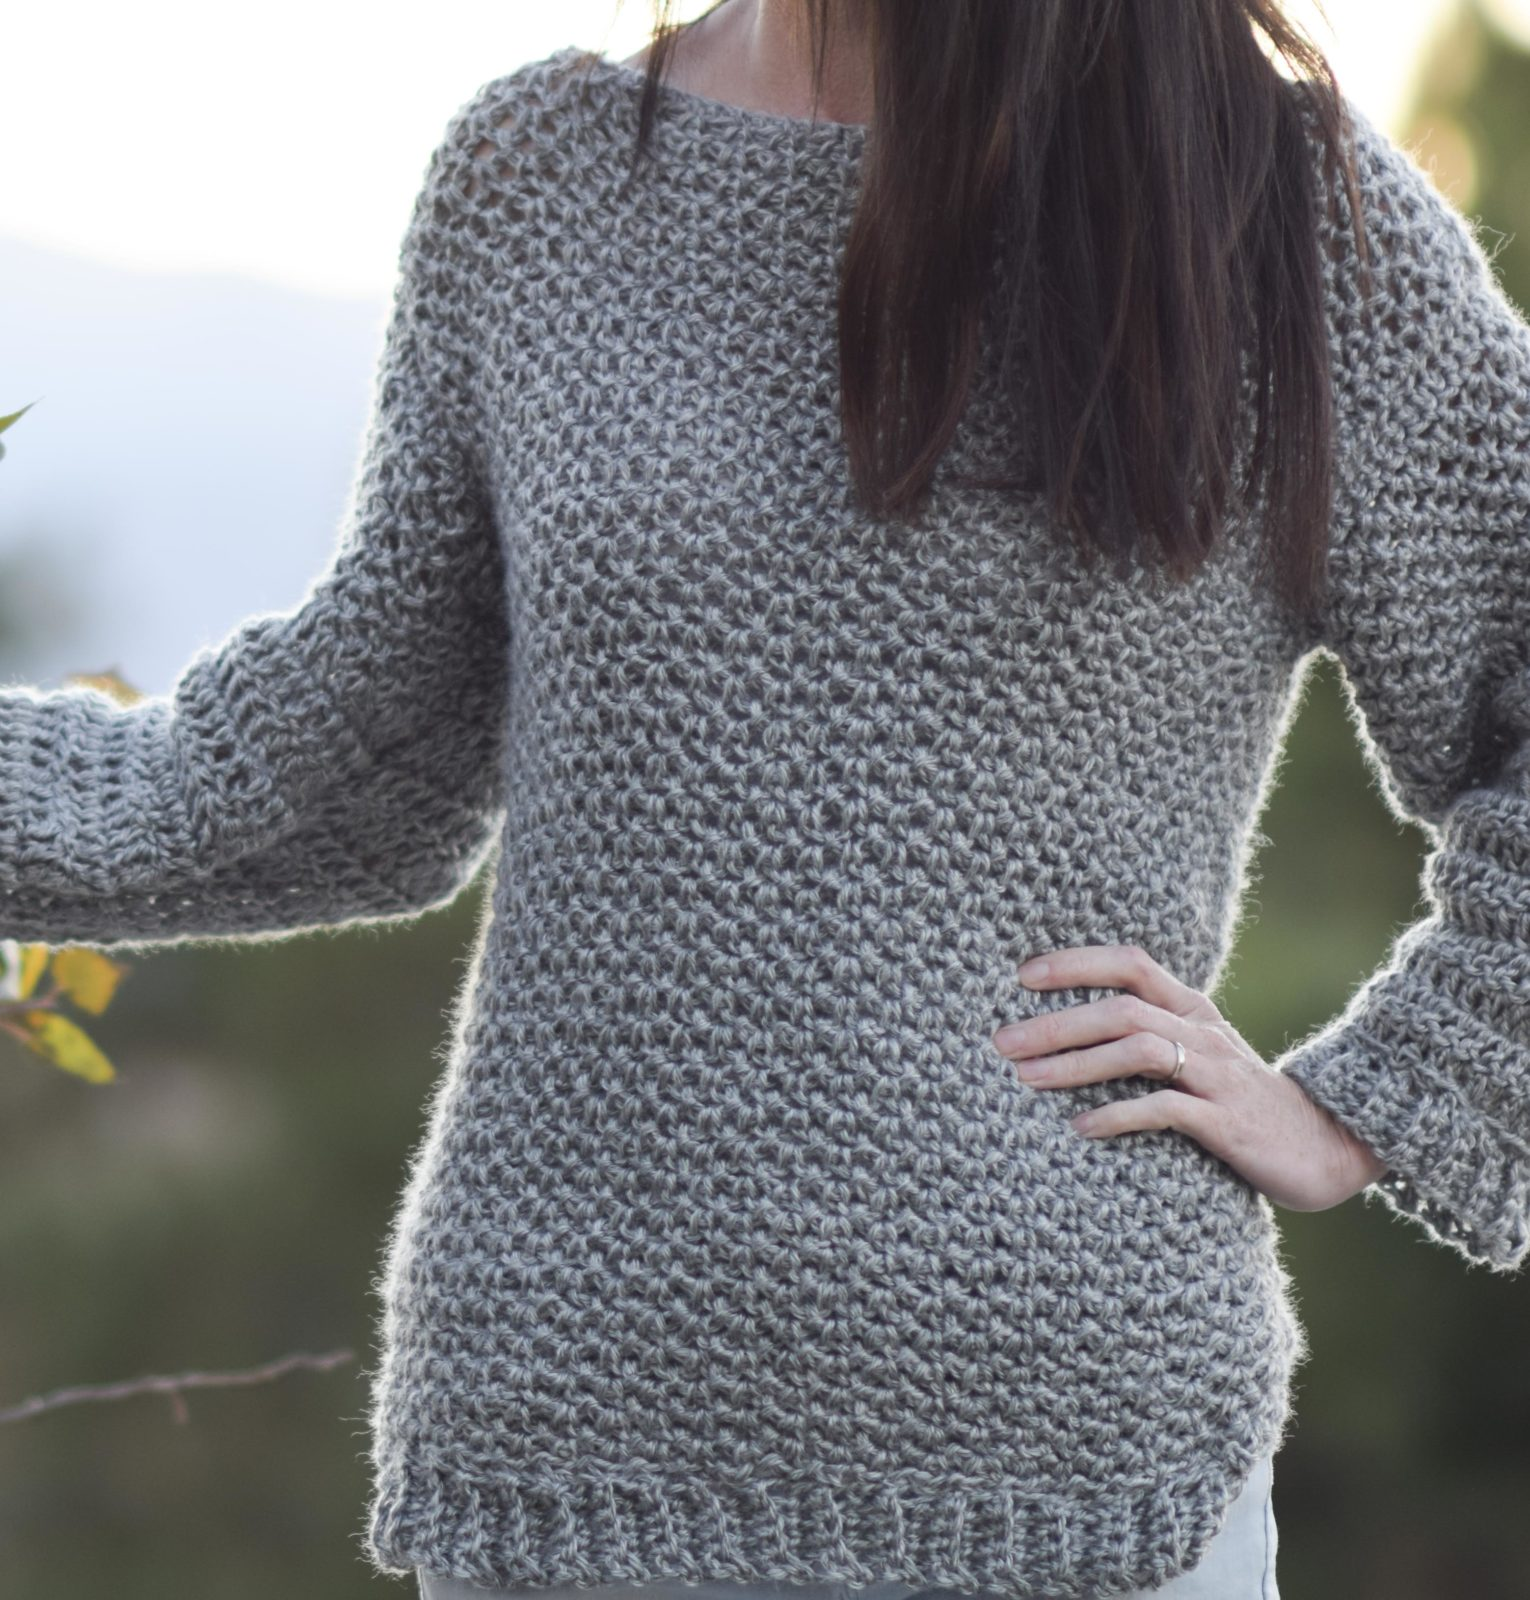 crochet sweater this is a terrific yarn at a great value - i only used jnjwcyp